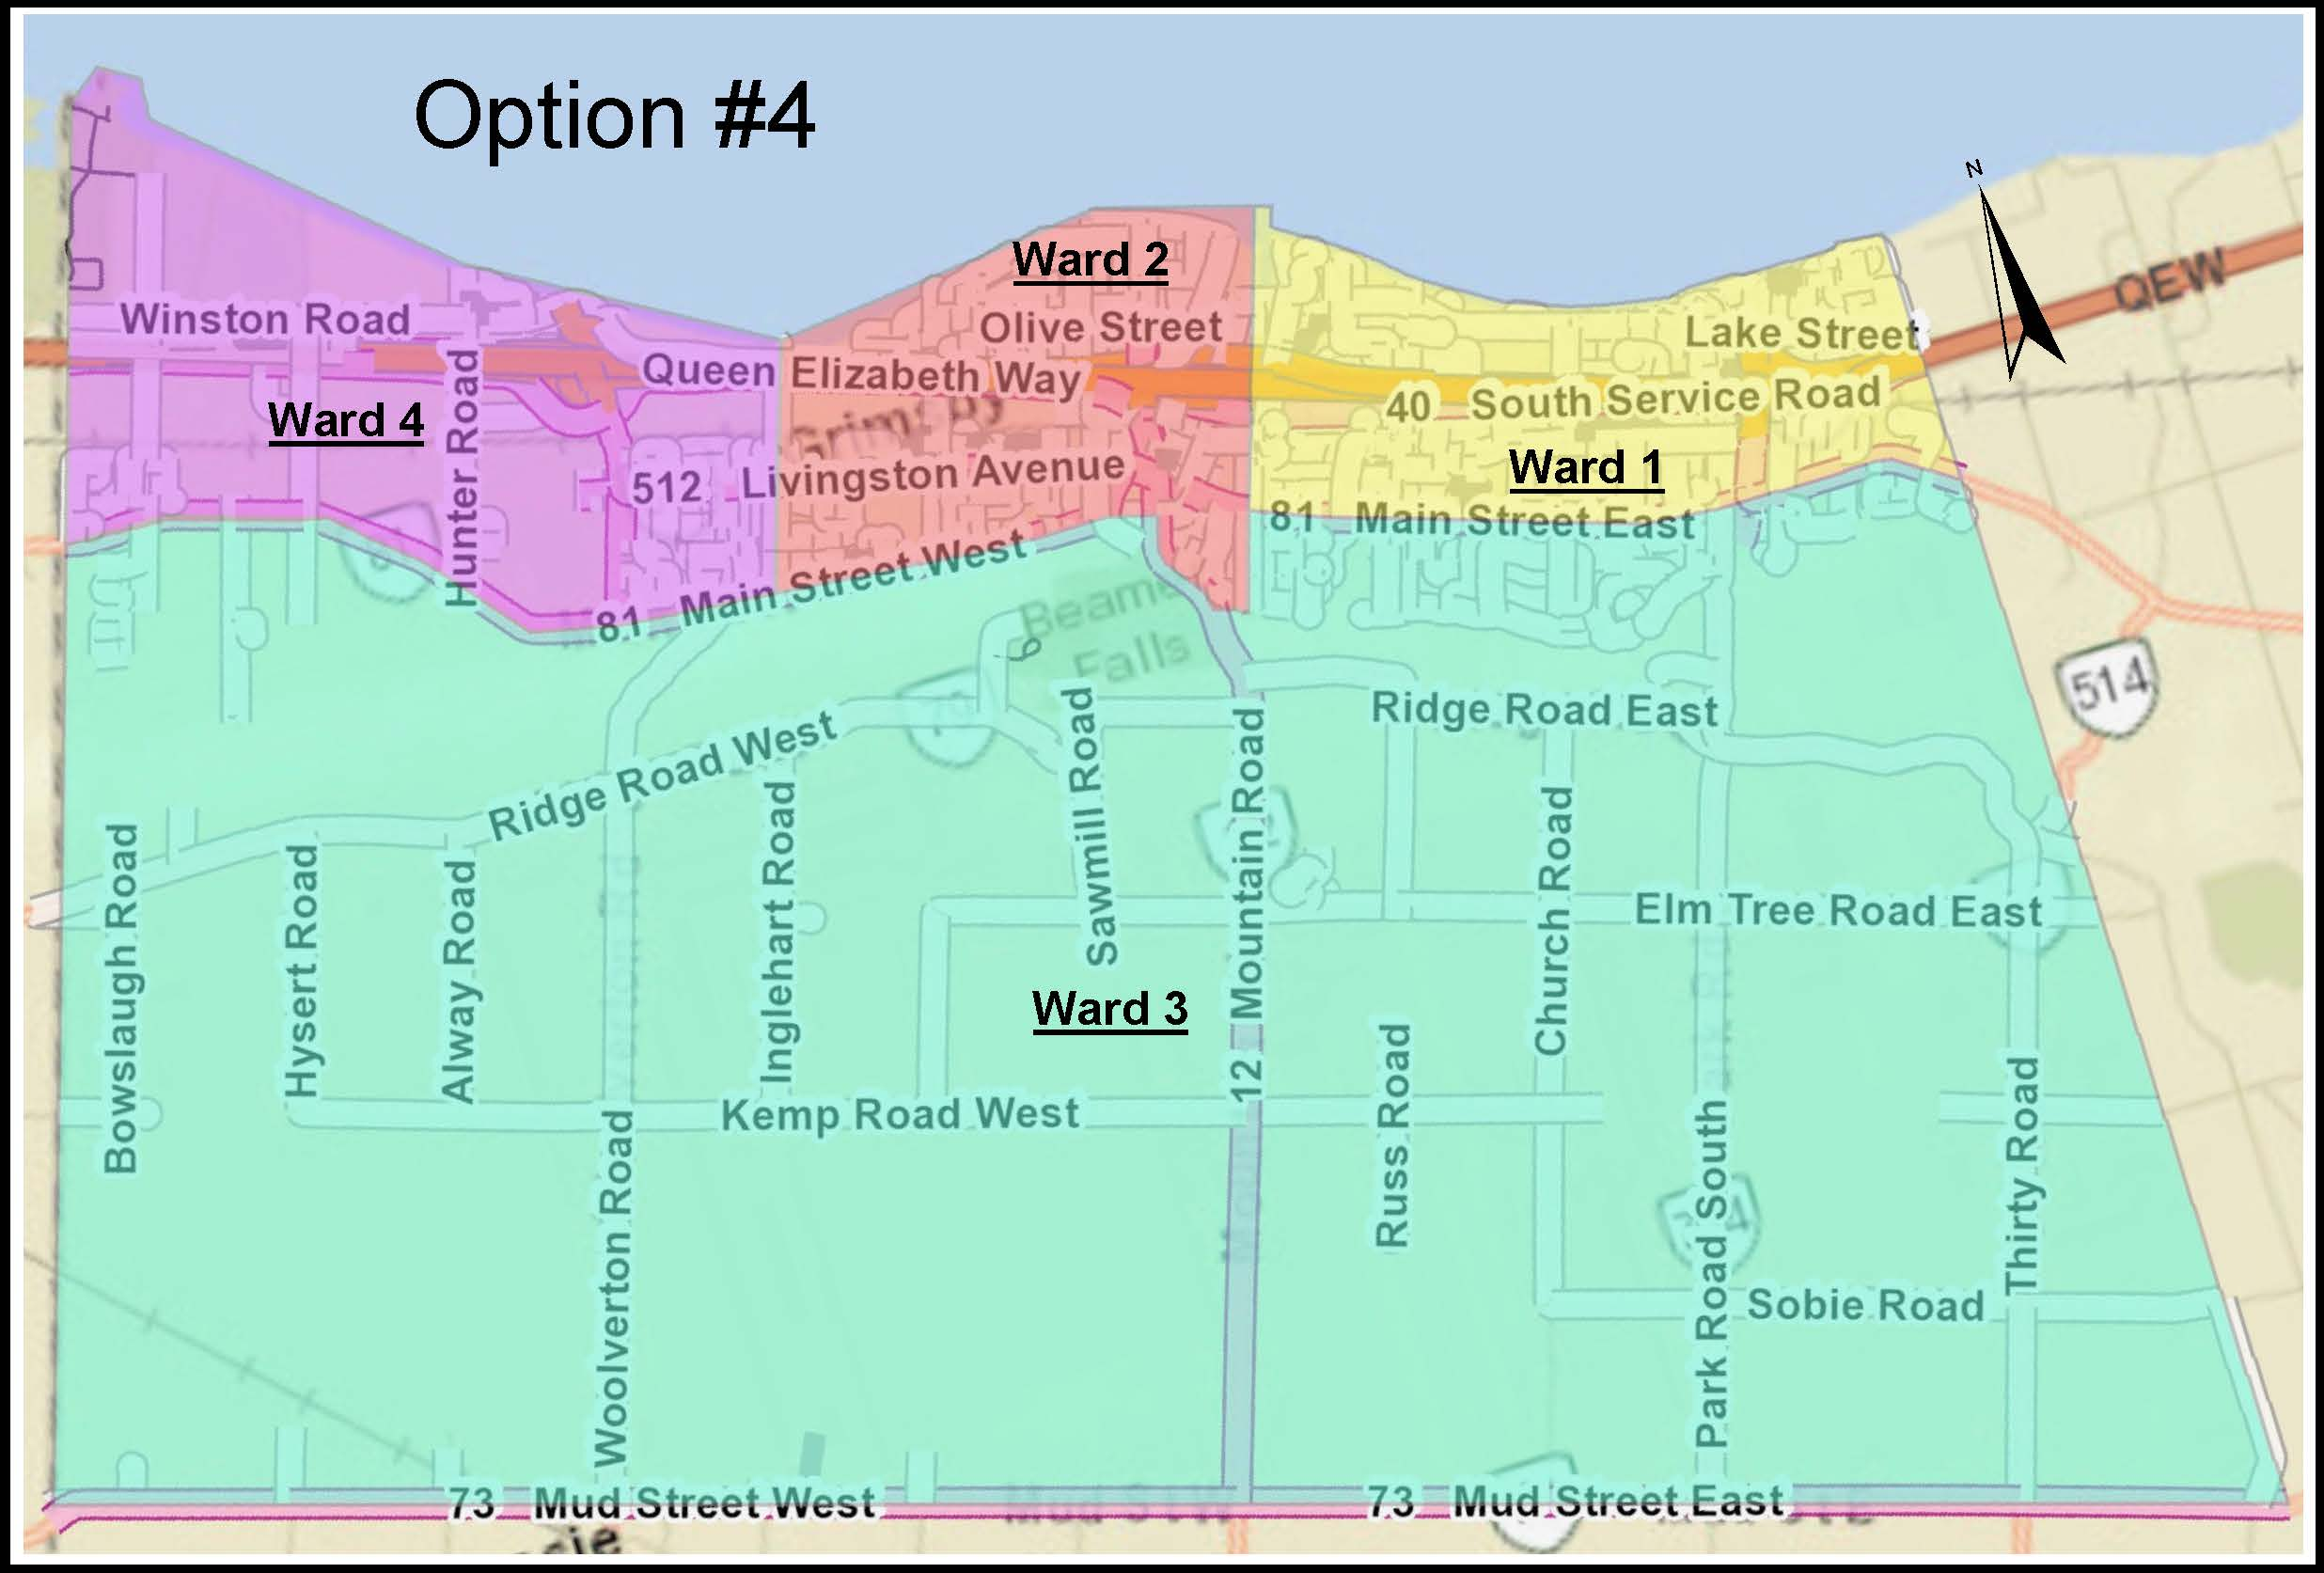 Ward Boundary Map Option 4